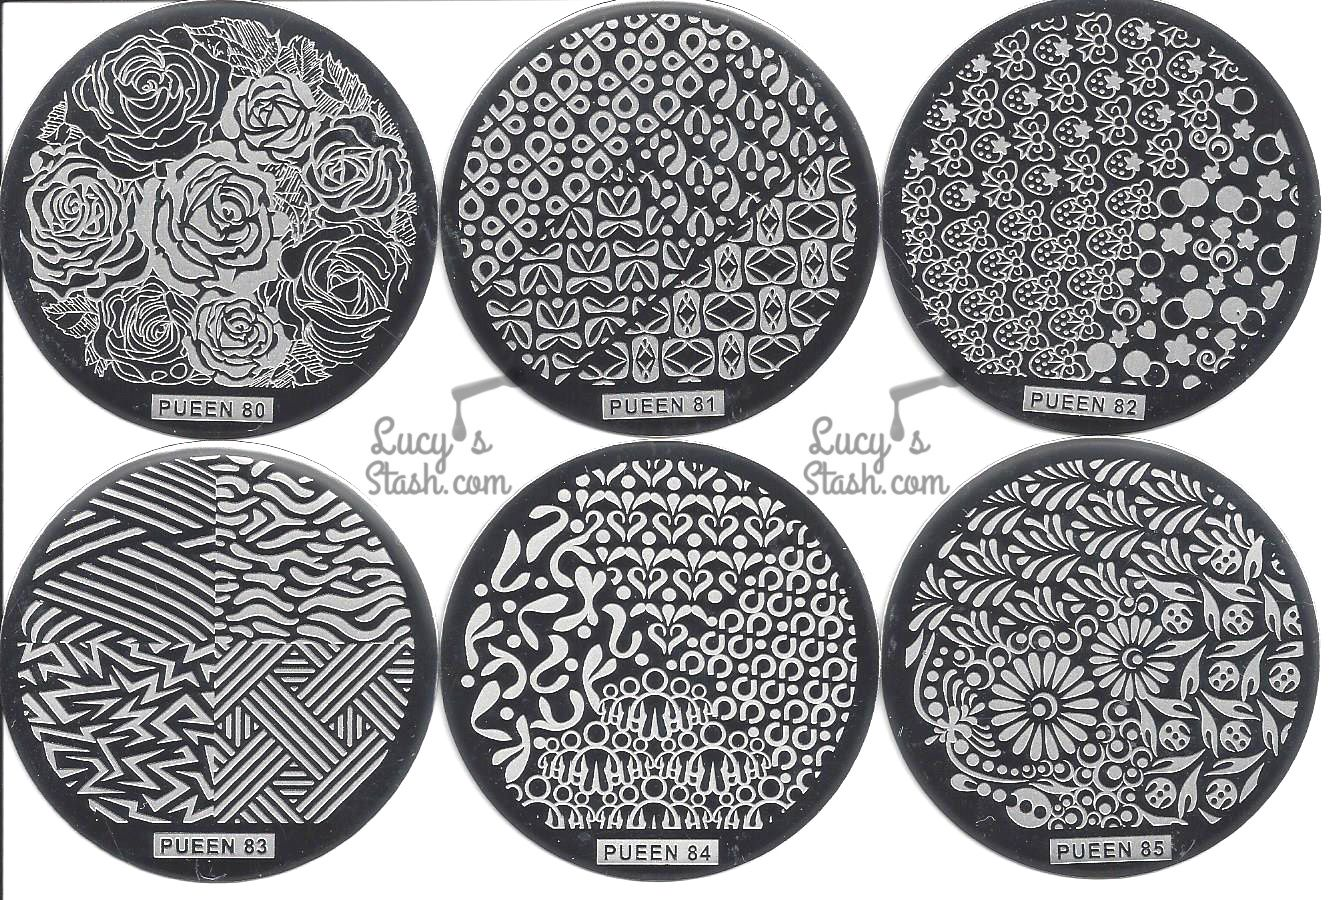 Review: Pueen Cosmetics Buffet Leisure Stamping Set